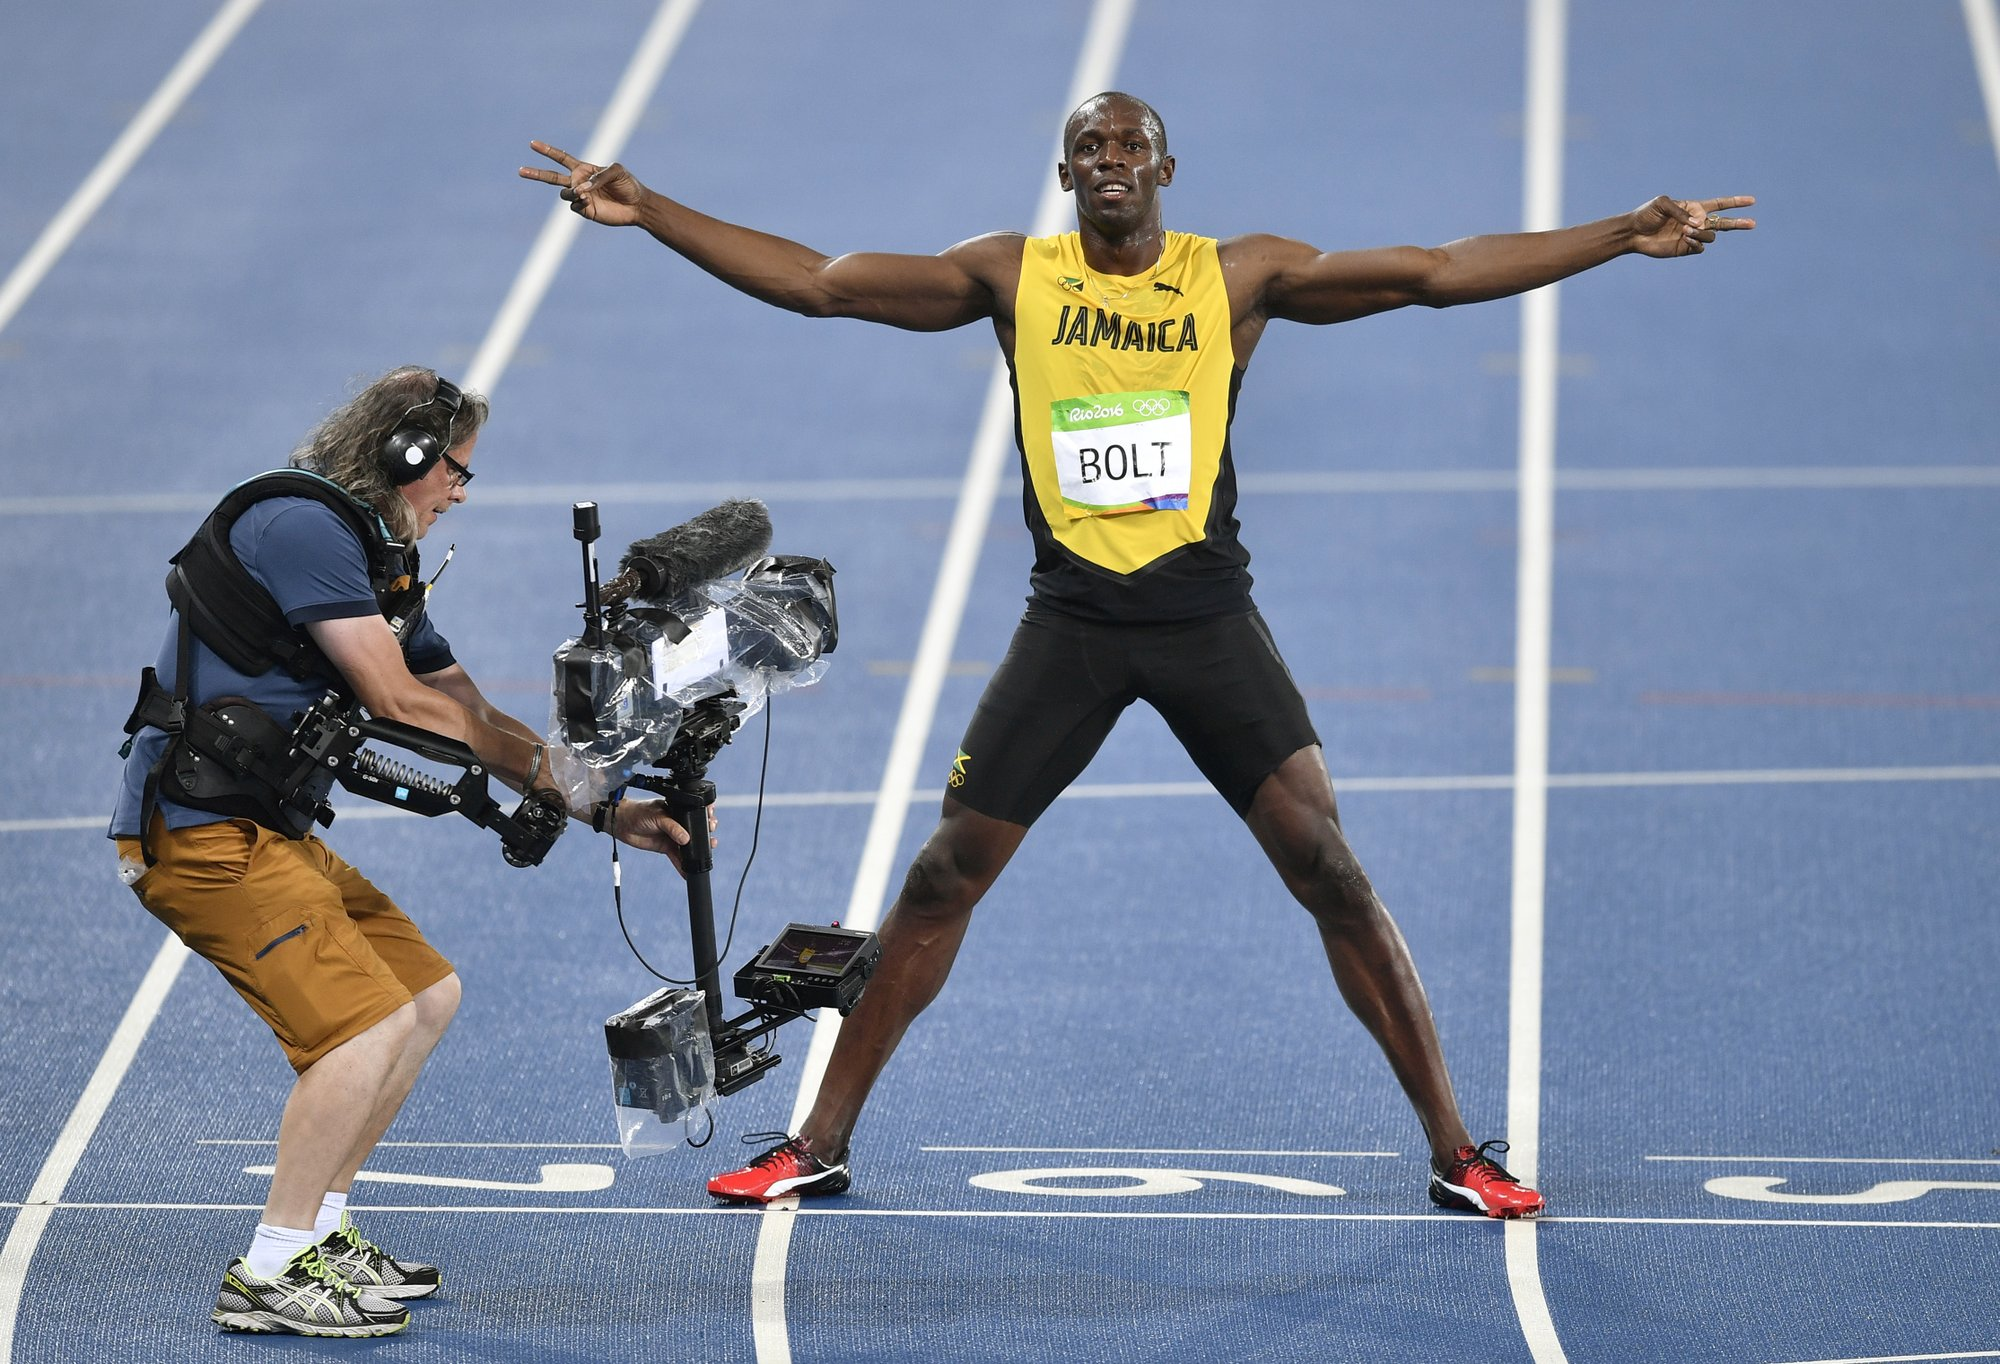 Ashton Eaton Ties Olympic Record But Its Bolts Show Again Current Relay Usain Bolt From Jamaica Celebrates Winning The Gold Medal In Mens 200 Meter Final Ahead During Athletics Competitions Of 2016 Summer Olympics